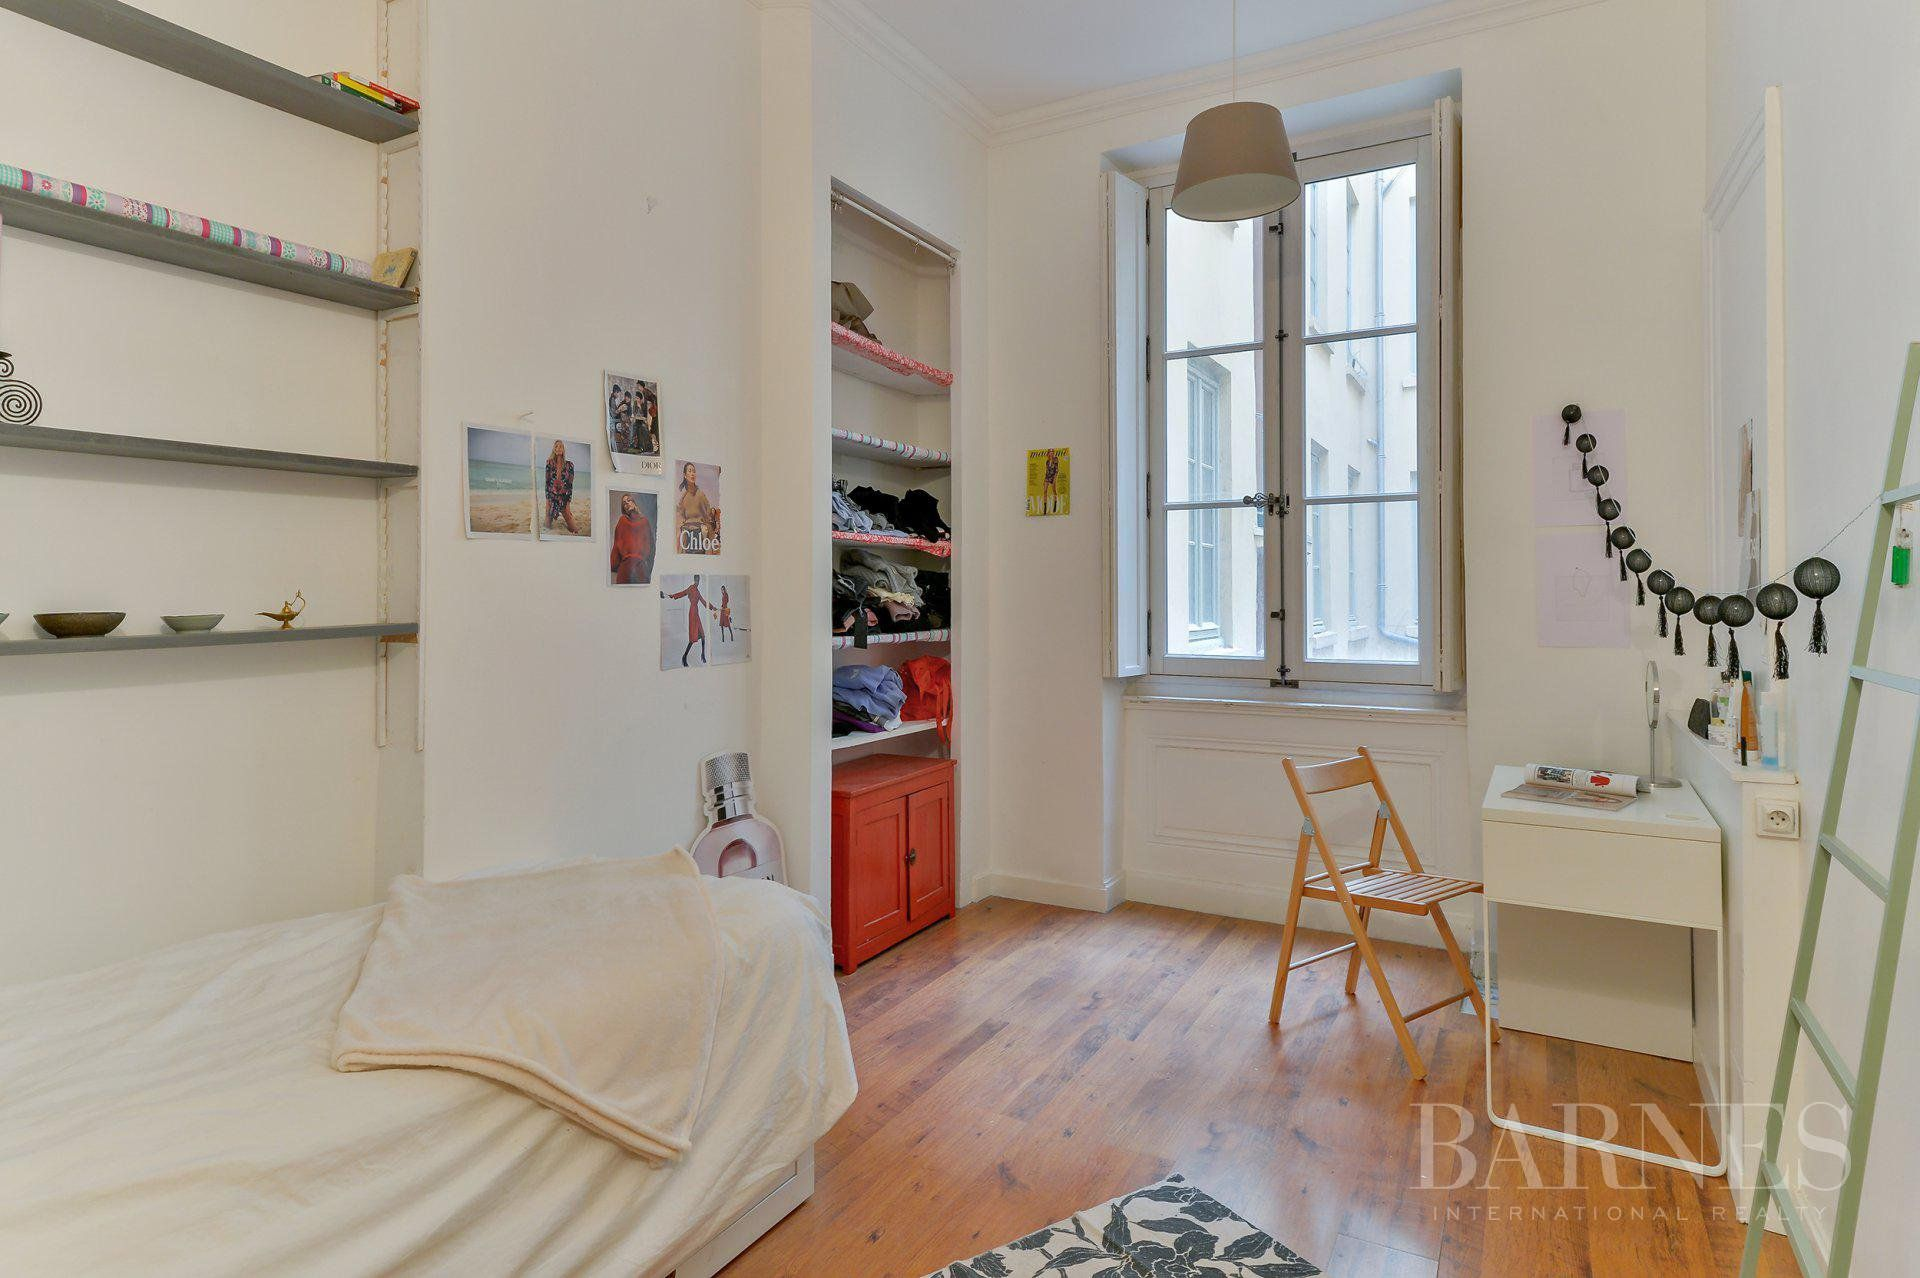 Lyon 2 - Ainay - 165 sqm family apartment - 4 bedrooms